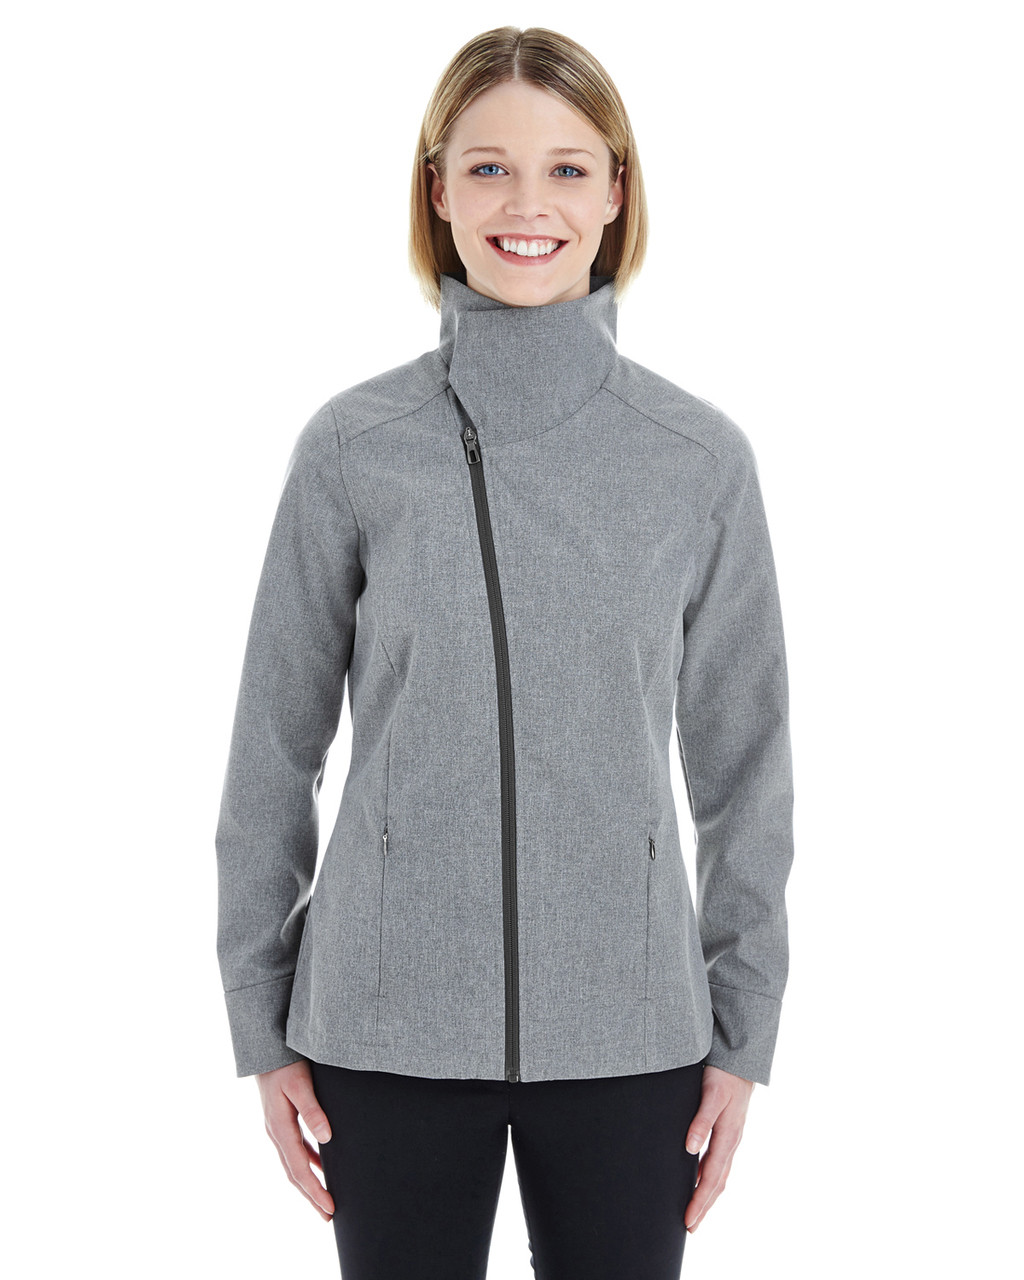 City Grey - Front - NE705W Ash City - North End Ladies' Edge Soft Shell Jacket with Fold-Down Collar   Blankclothing.ca